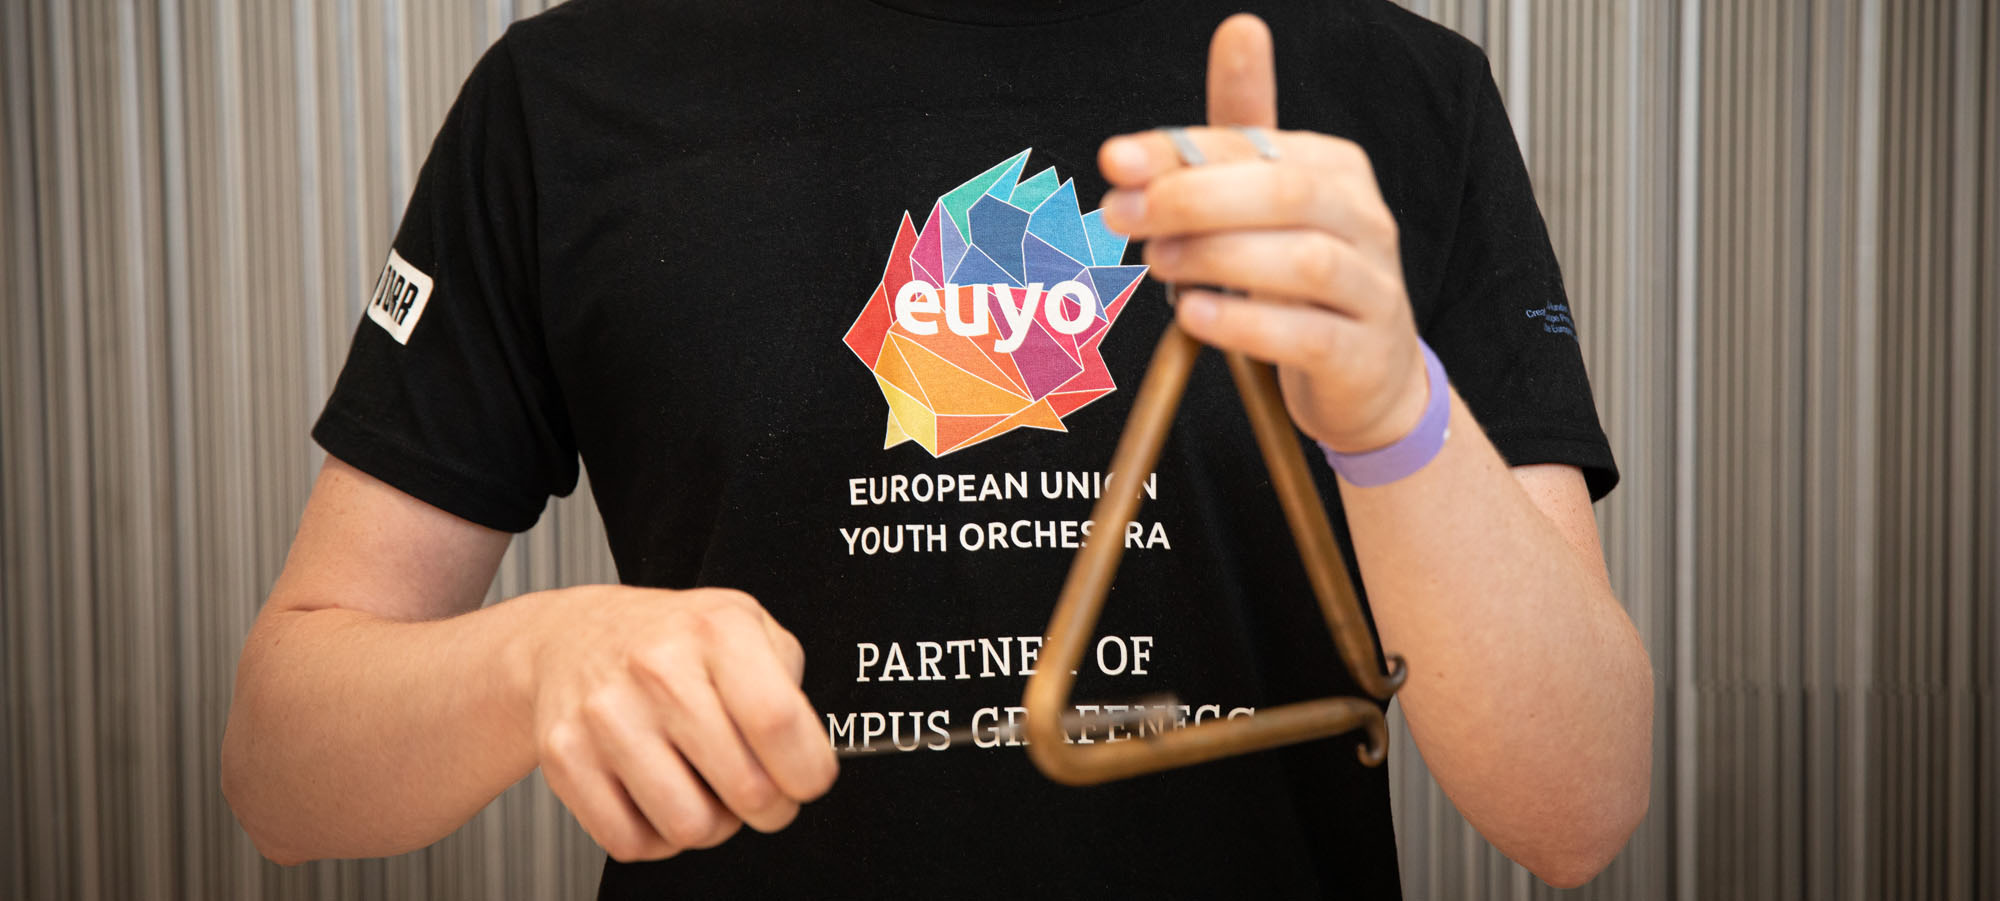 How can aspiring EUYO players be better prepared for audition?